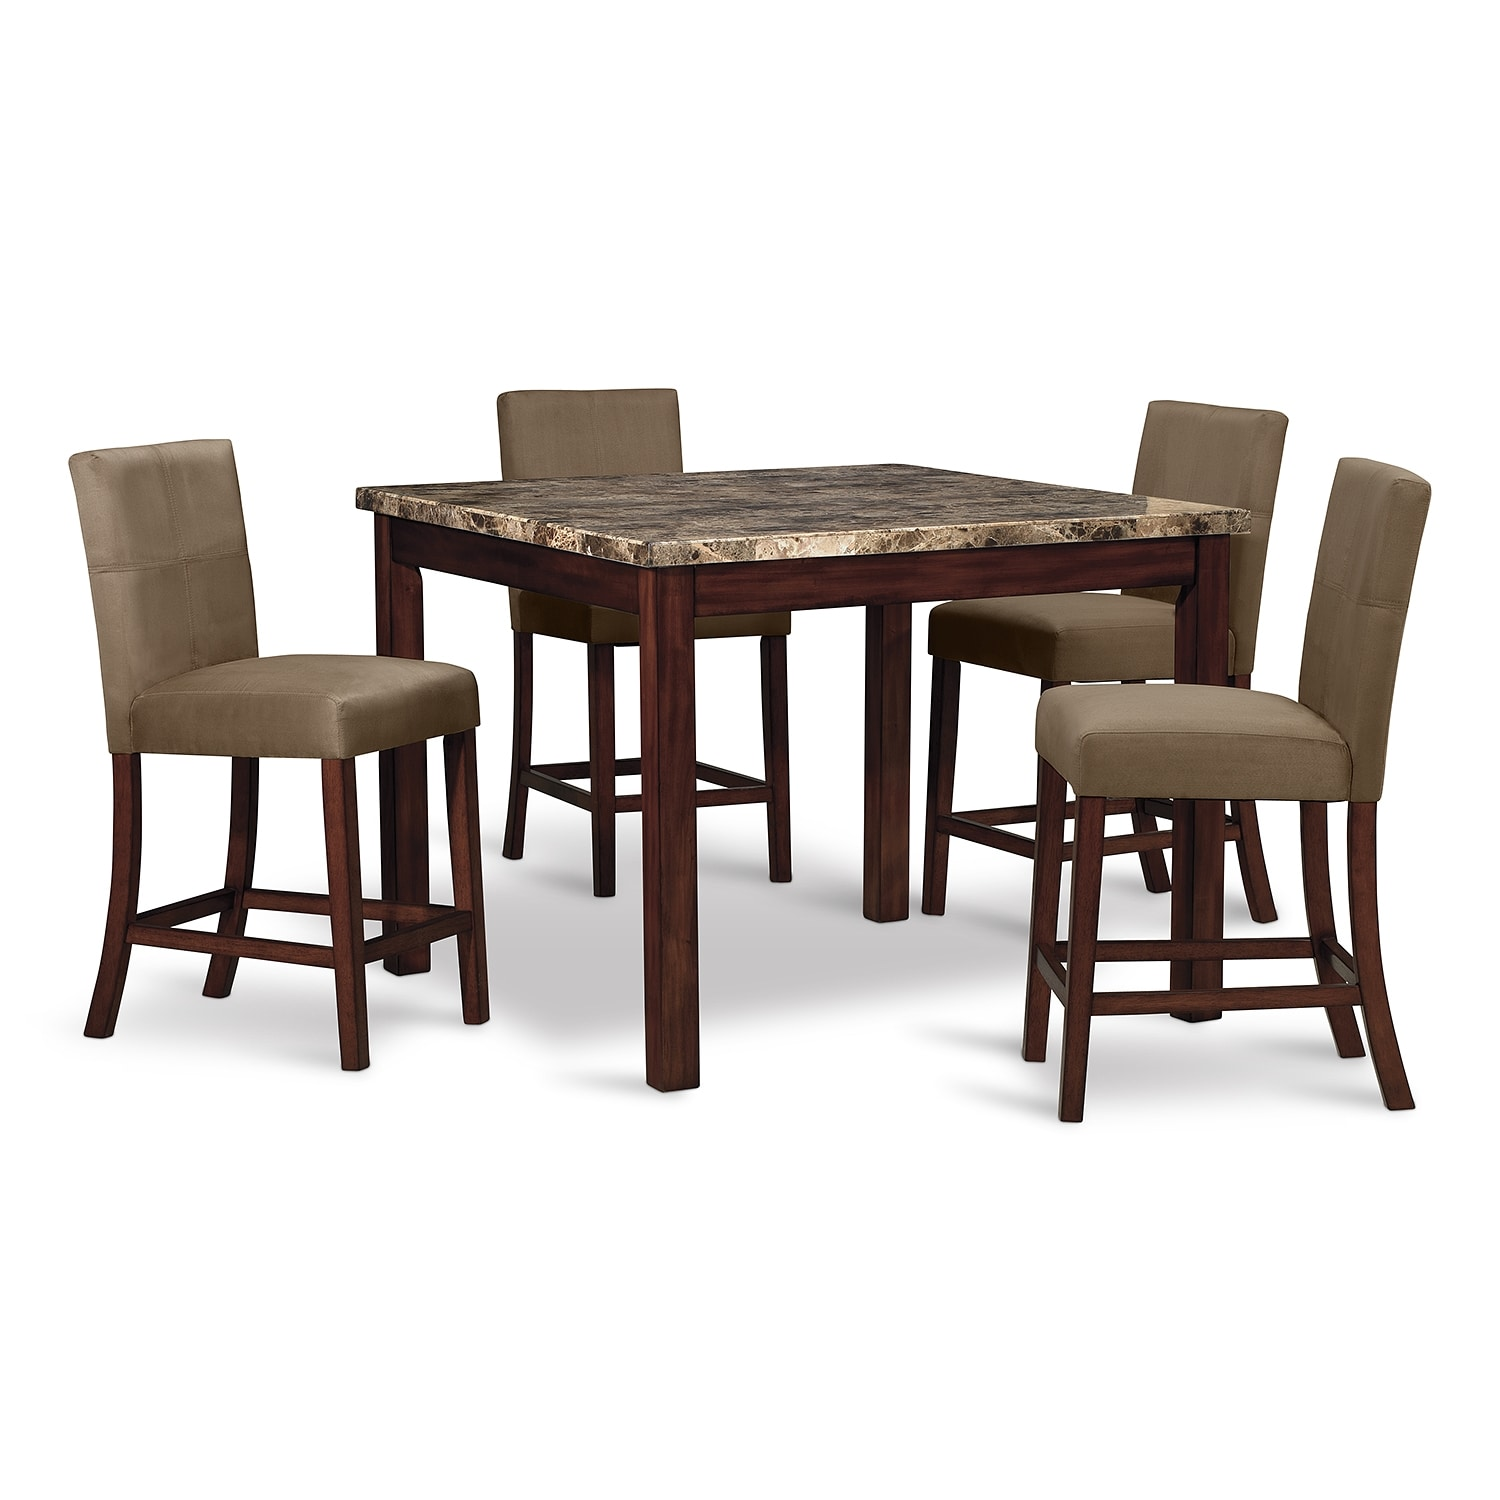 Cornerstone ii dining room 5 pc counter height dinette for Dining room value city furniture